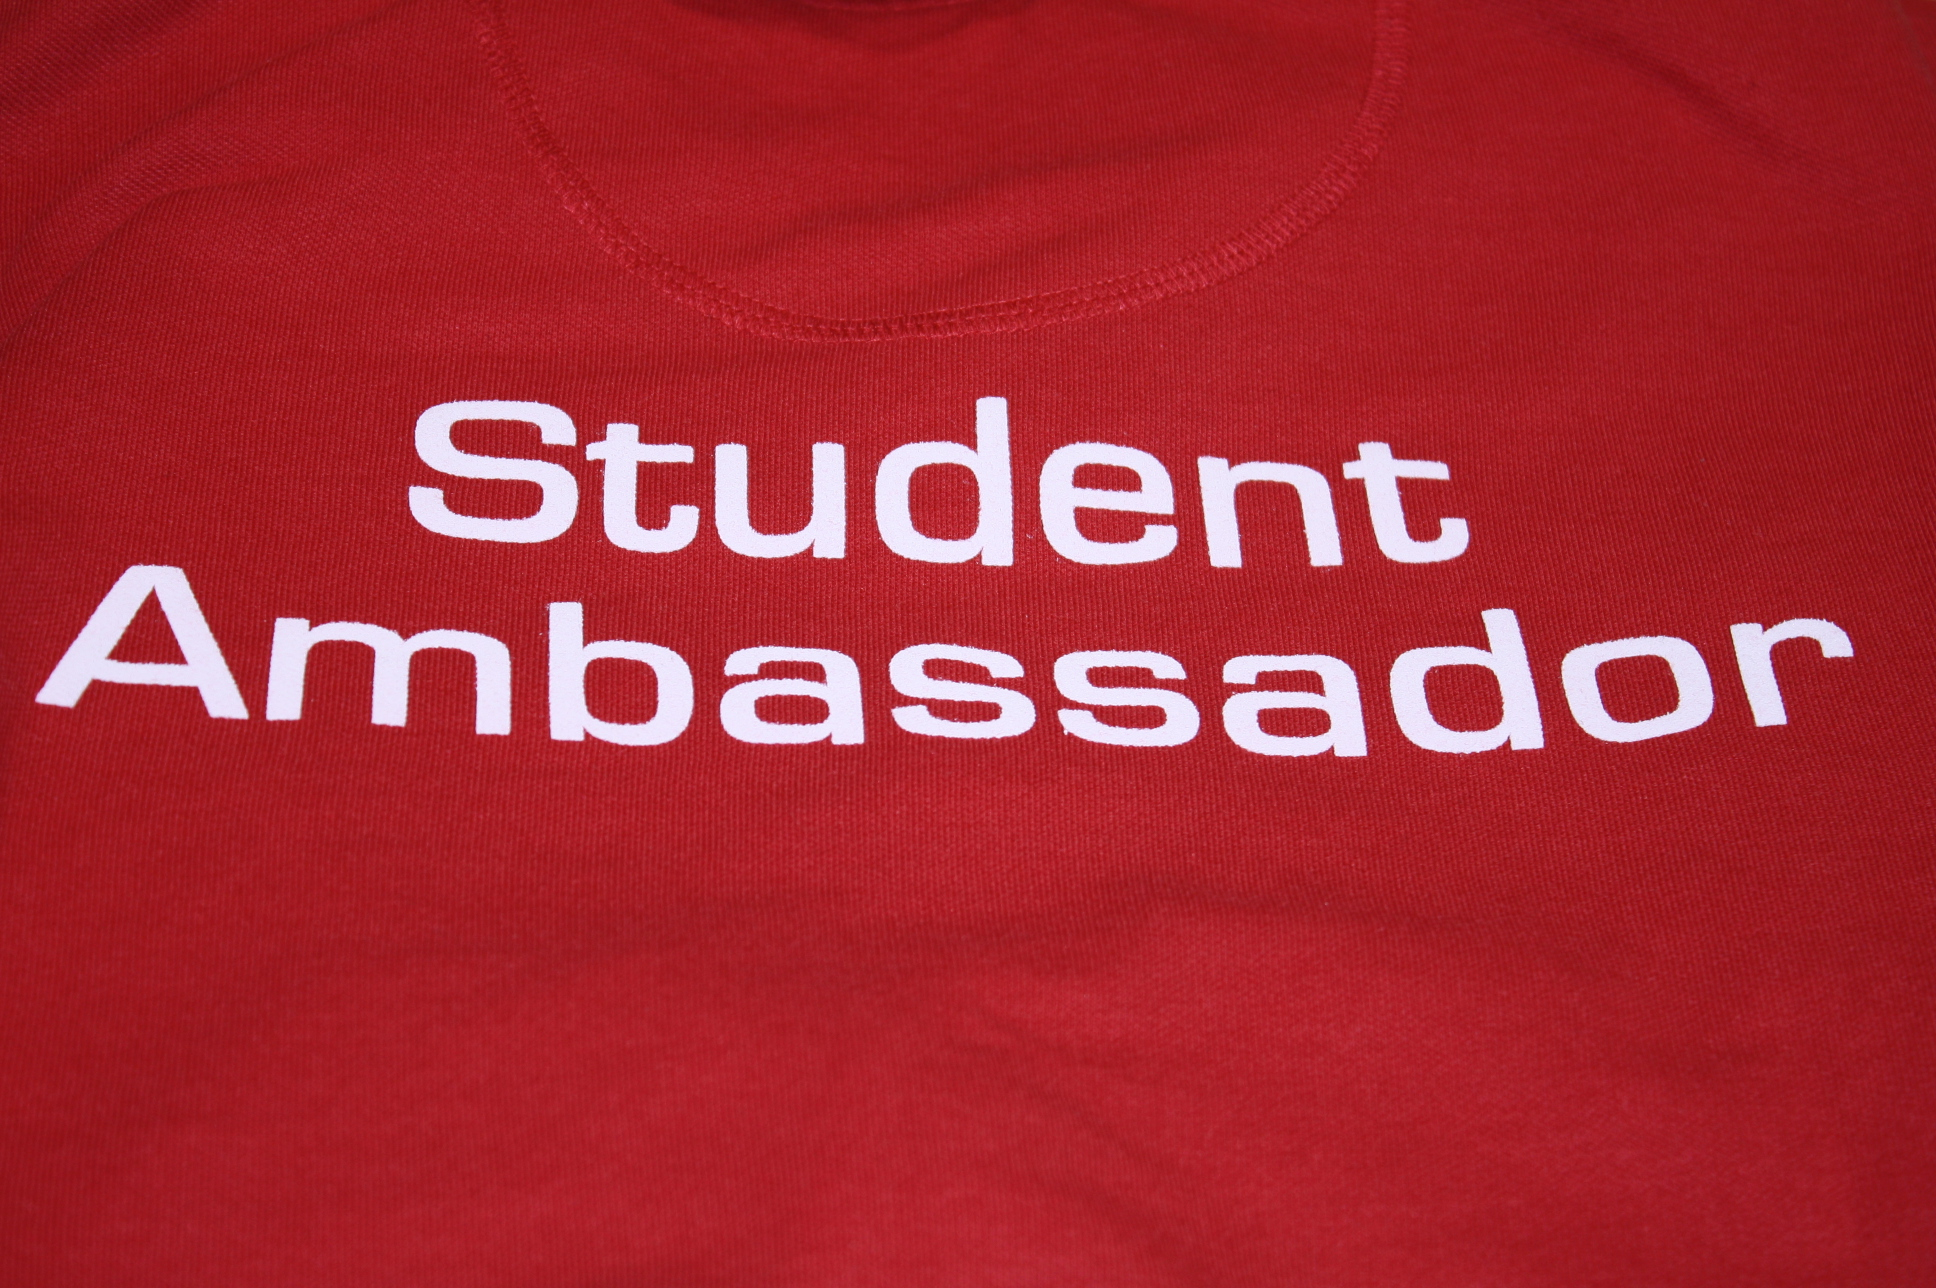 New recruits wanted for Student Ambassador role